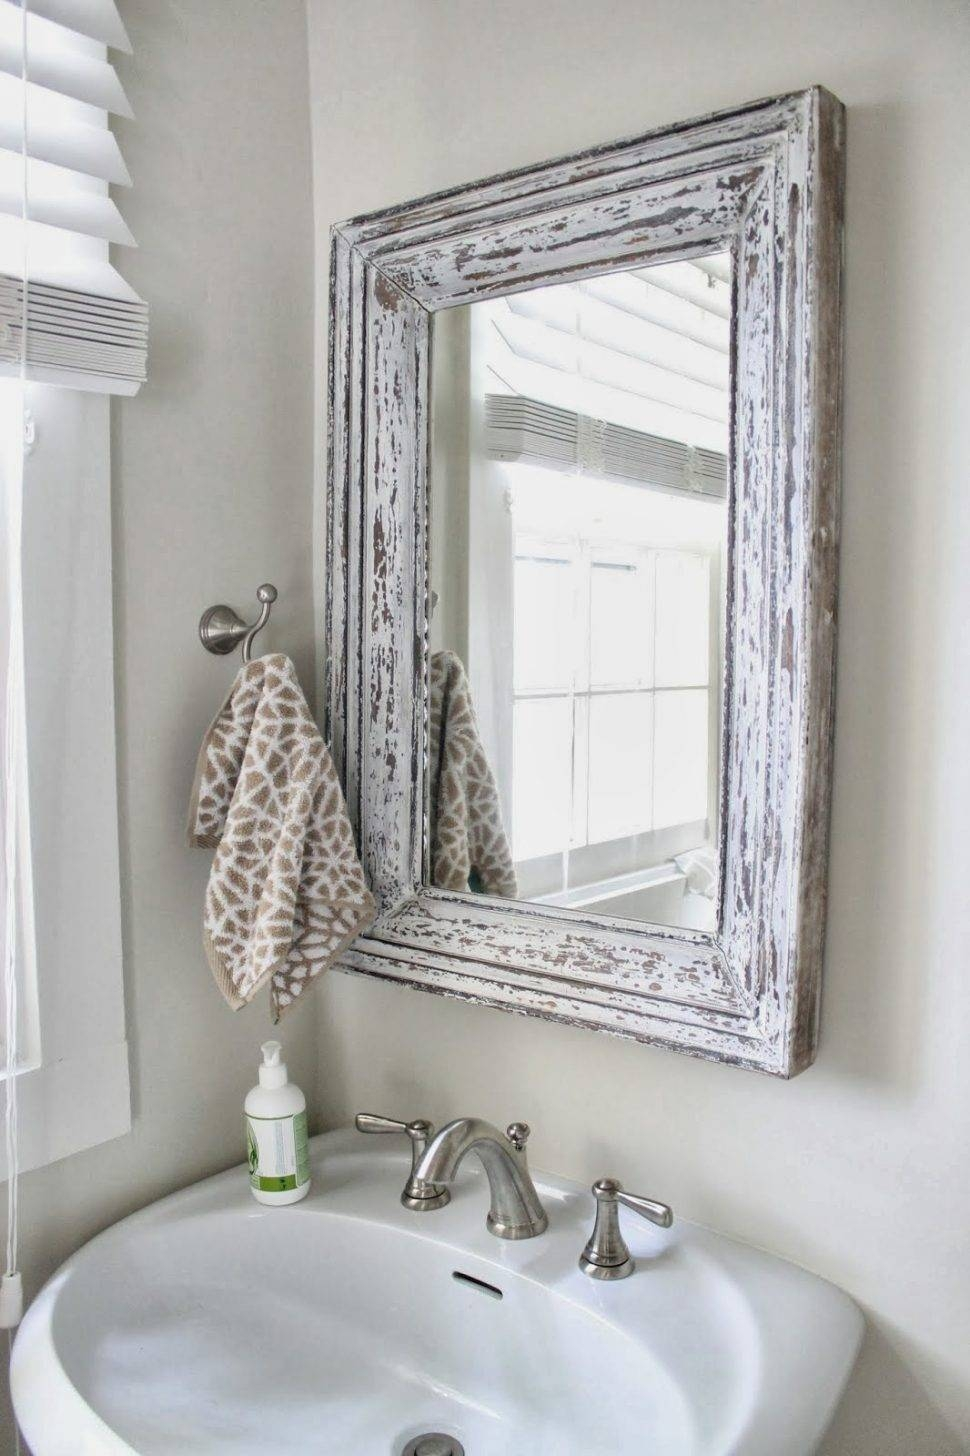 Fantastic Shabby Chic Bathroom Mirror Cabinets White For – Home For Shabby Chic Bathroom Mirrors (View 5 of 15)